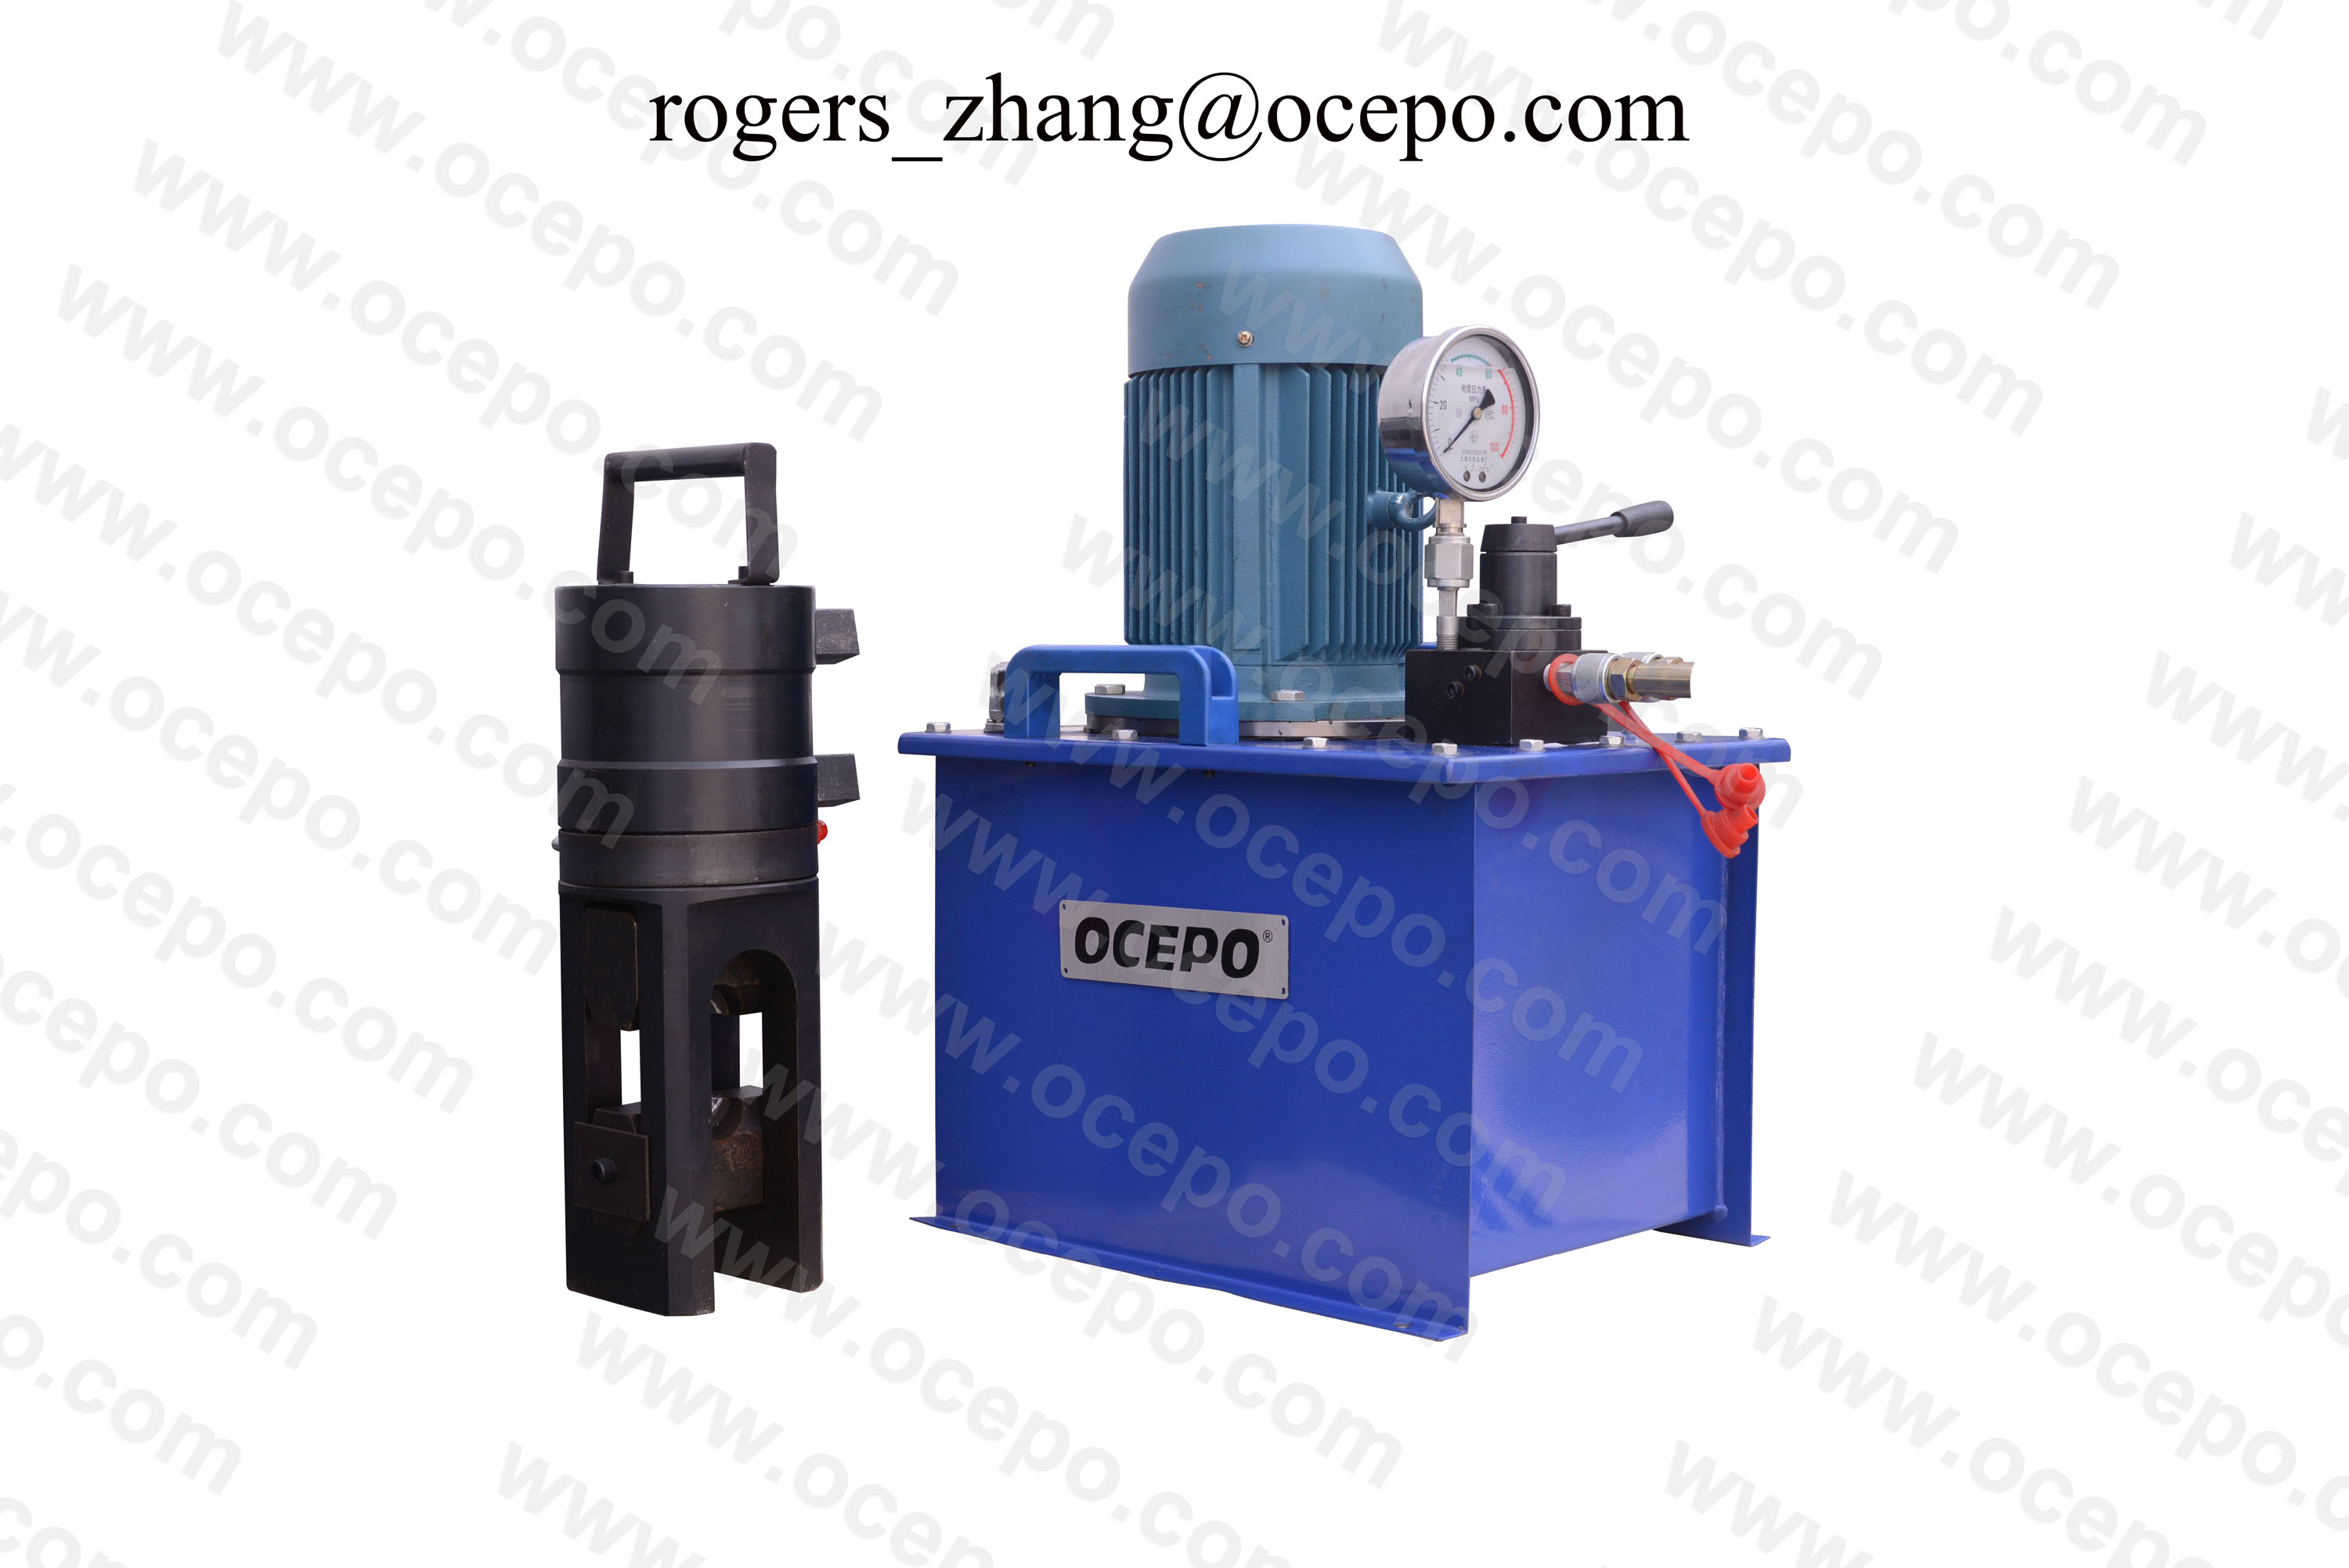 HLY-32 Rebar Cold Stamping Machine, HLY-40 Rebar Cold Stamping Machine, Press coupler machine